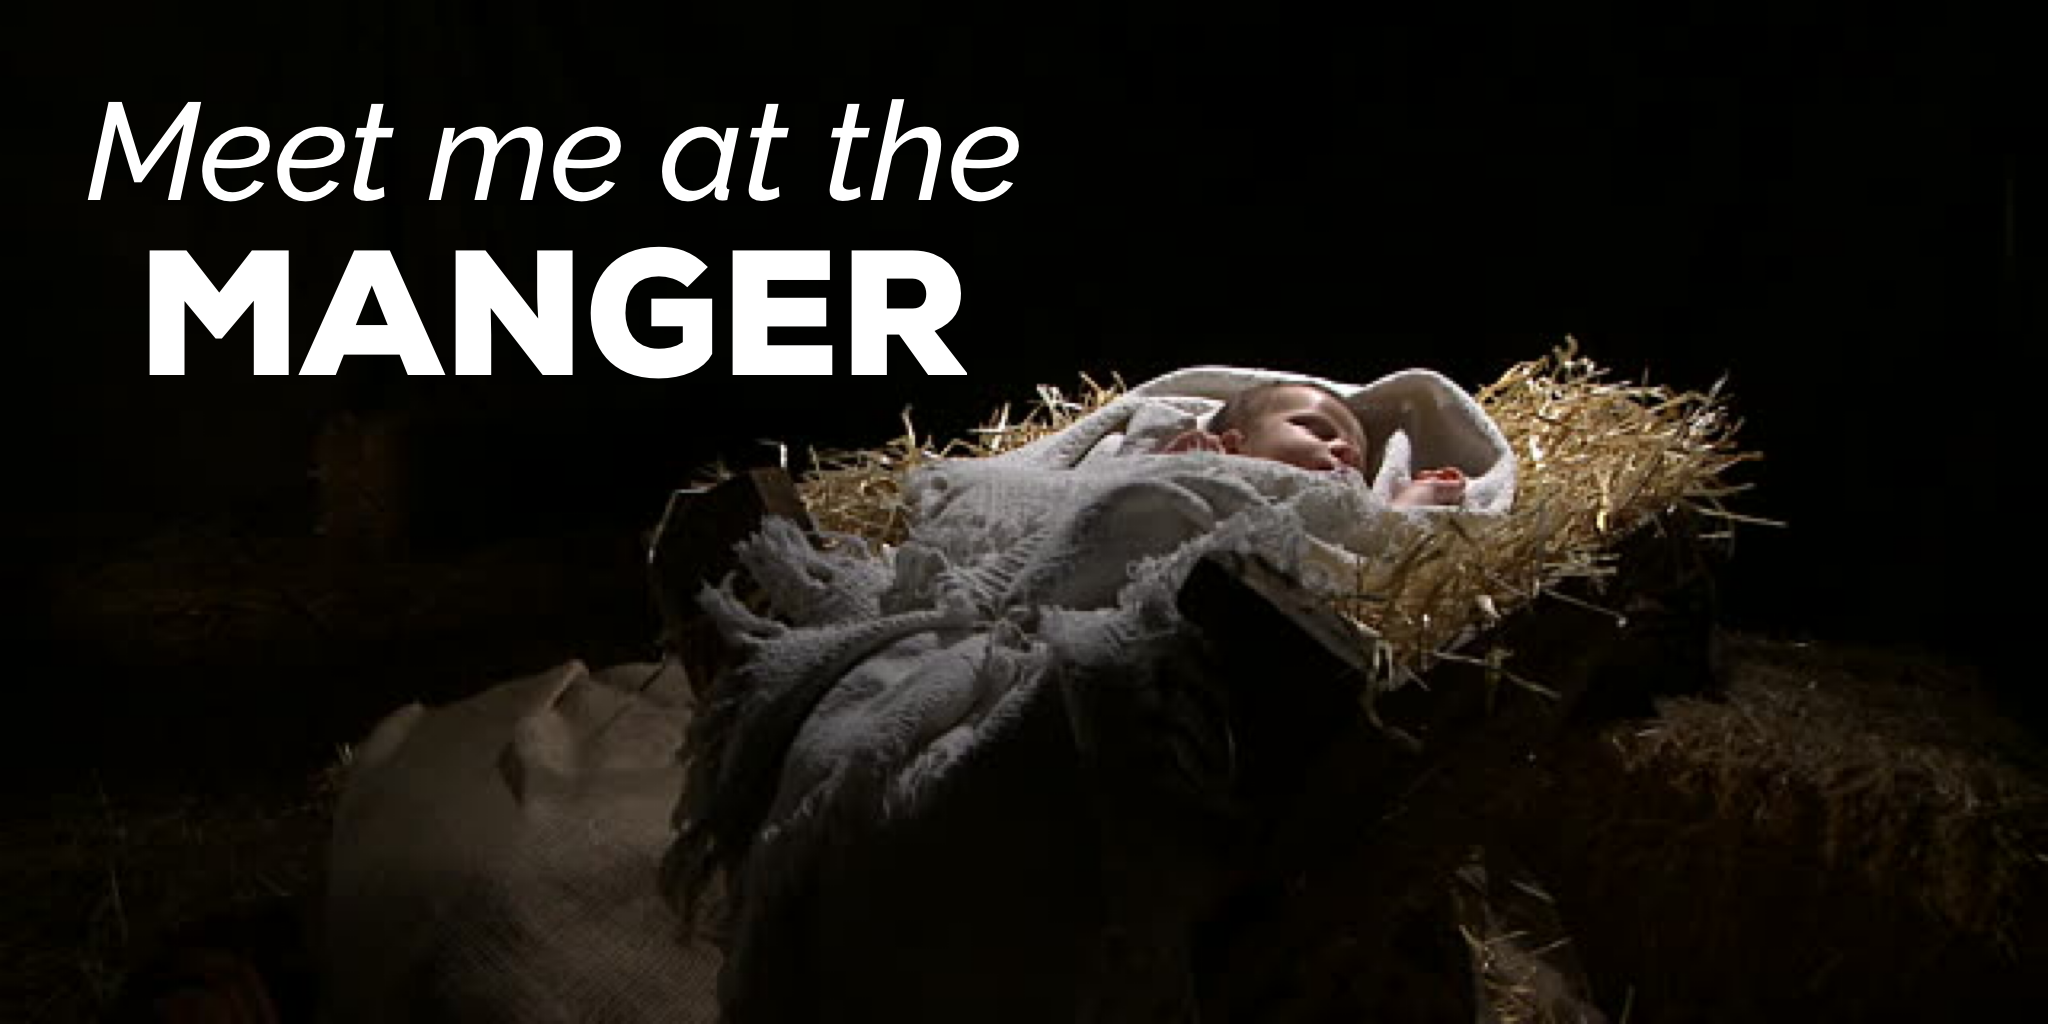 Meet me at the Manger Image